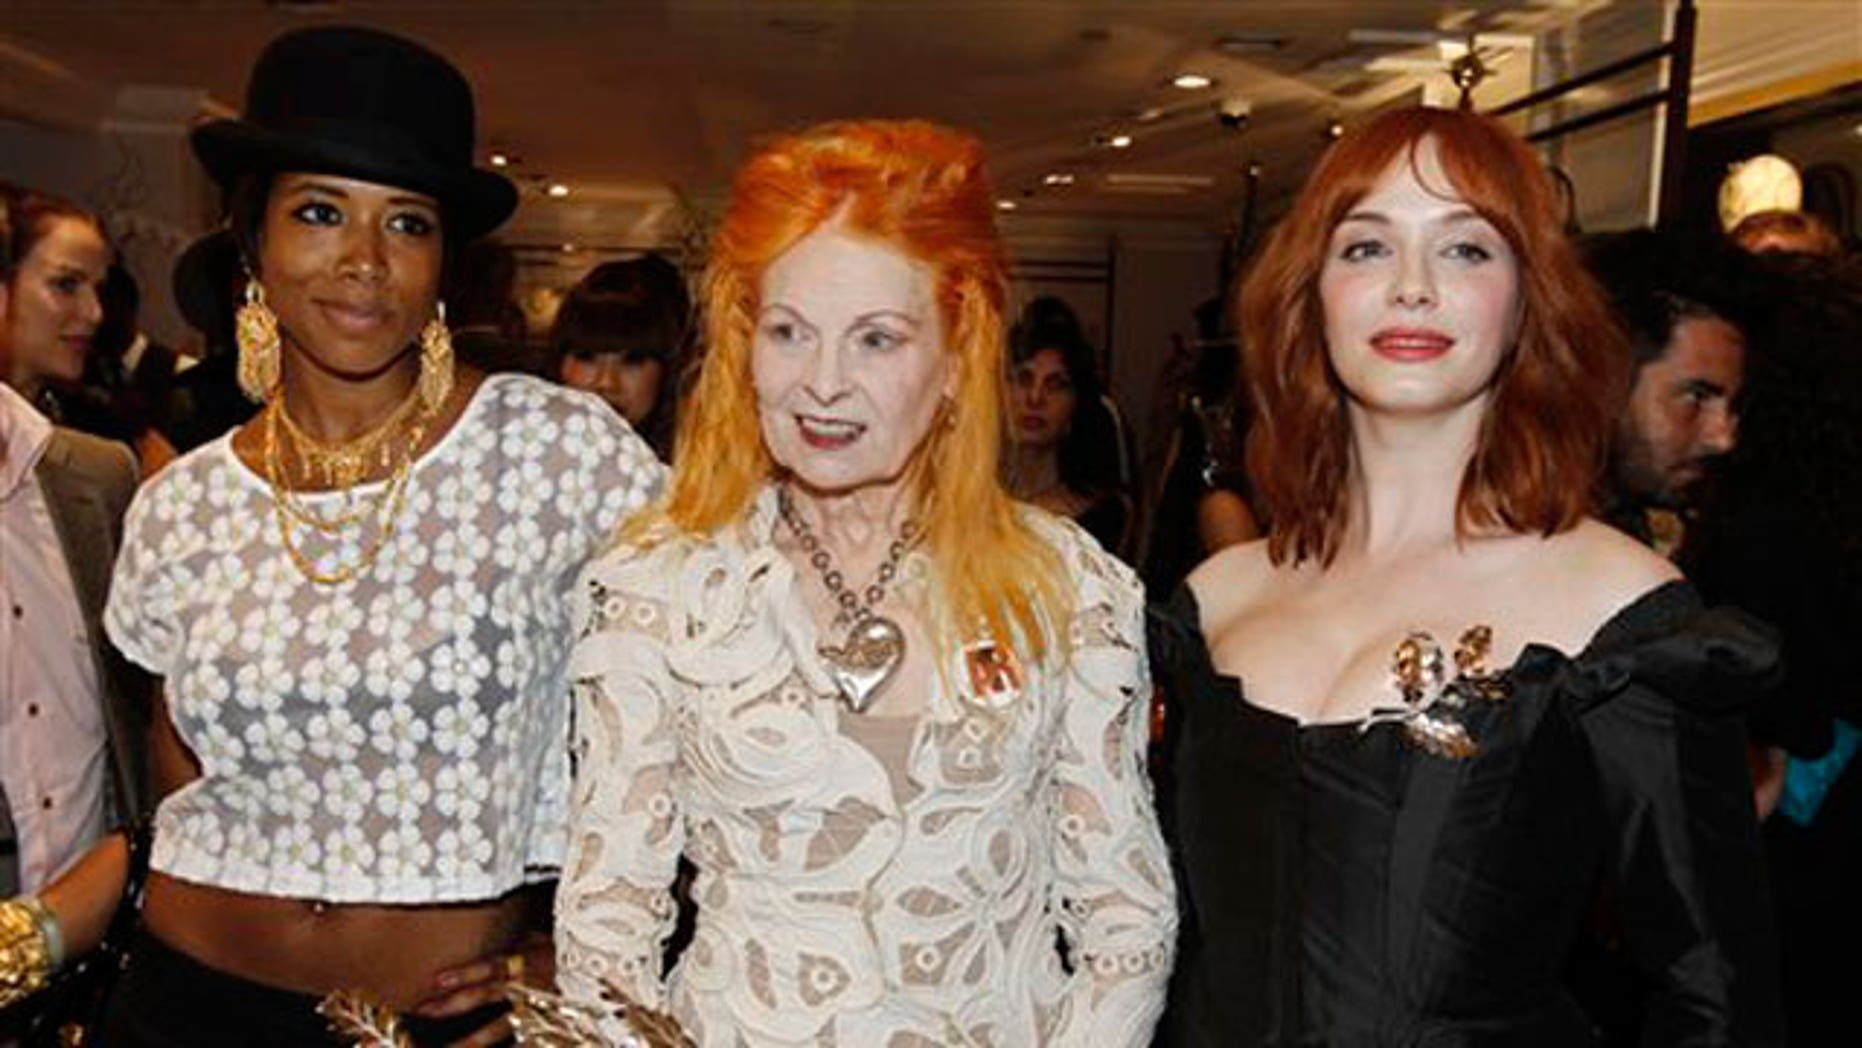 March 30: Dame Vivienne Westwood, center, actress Christina Hendricks, right, and musician Kelis pose together at the opening celebration for the Vivienne Westwood flagship store and Palladium Jewelry Collection in Los Angeles.